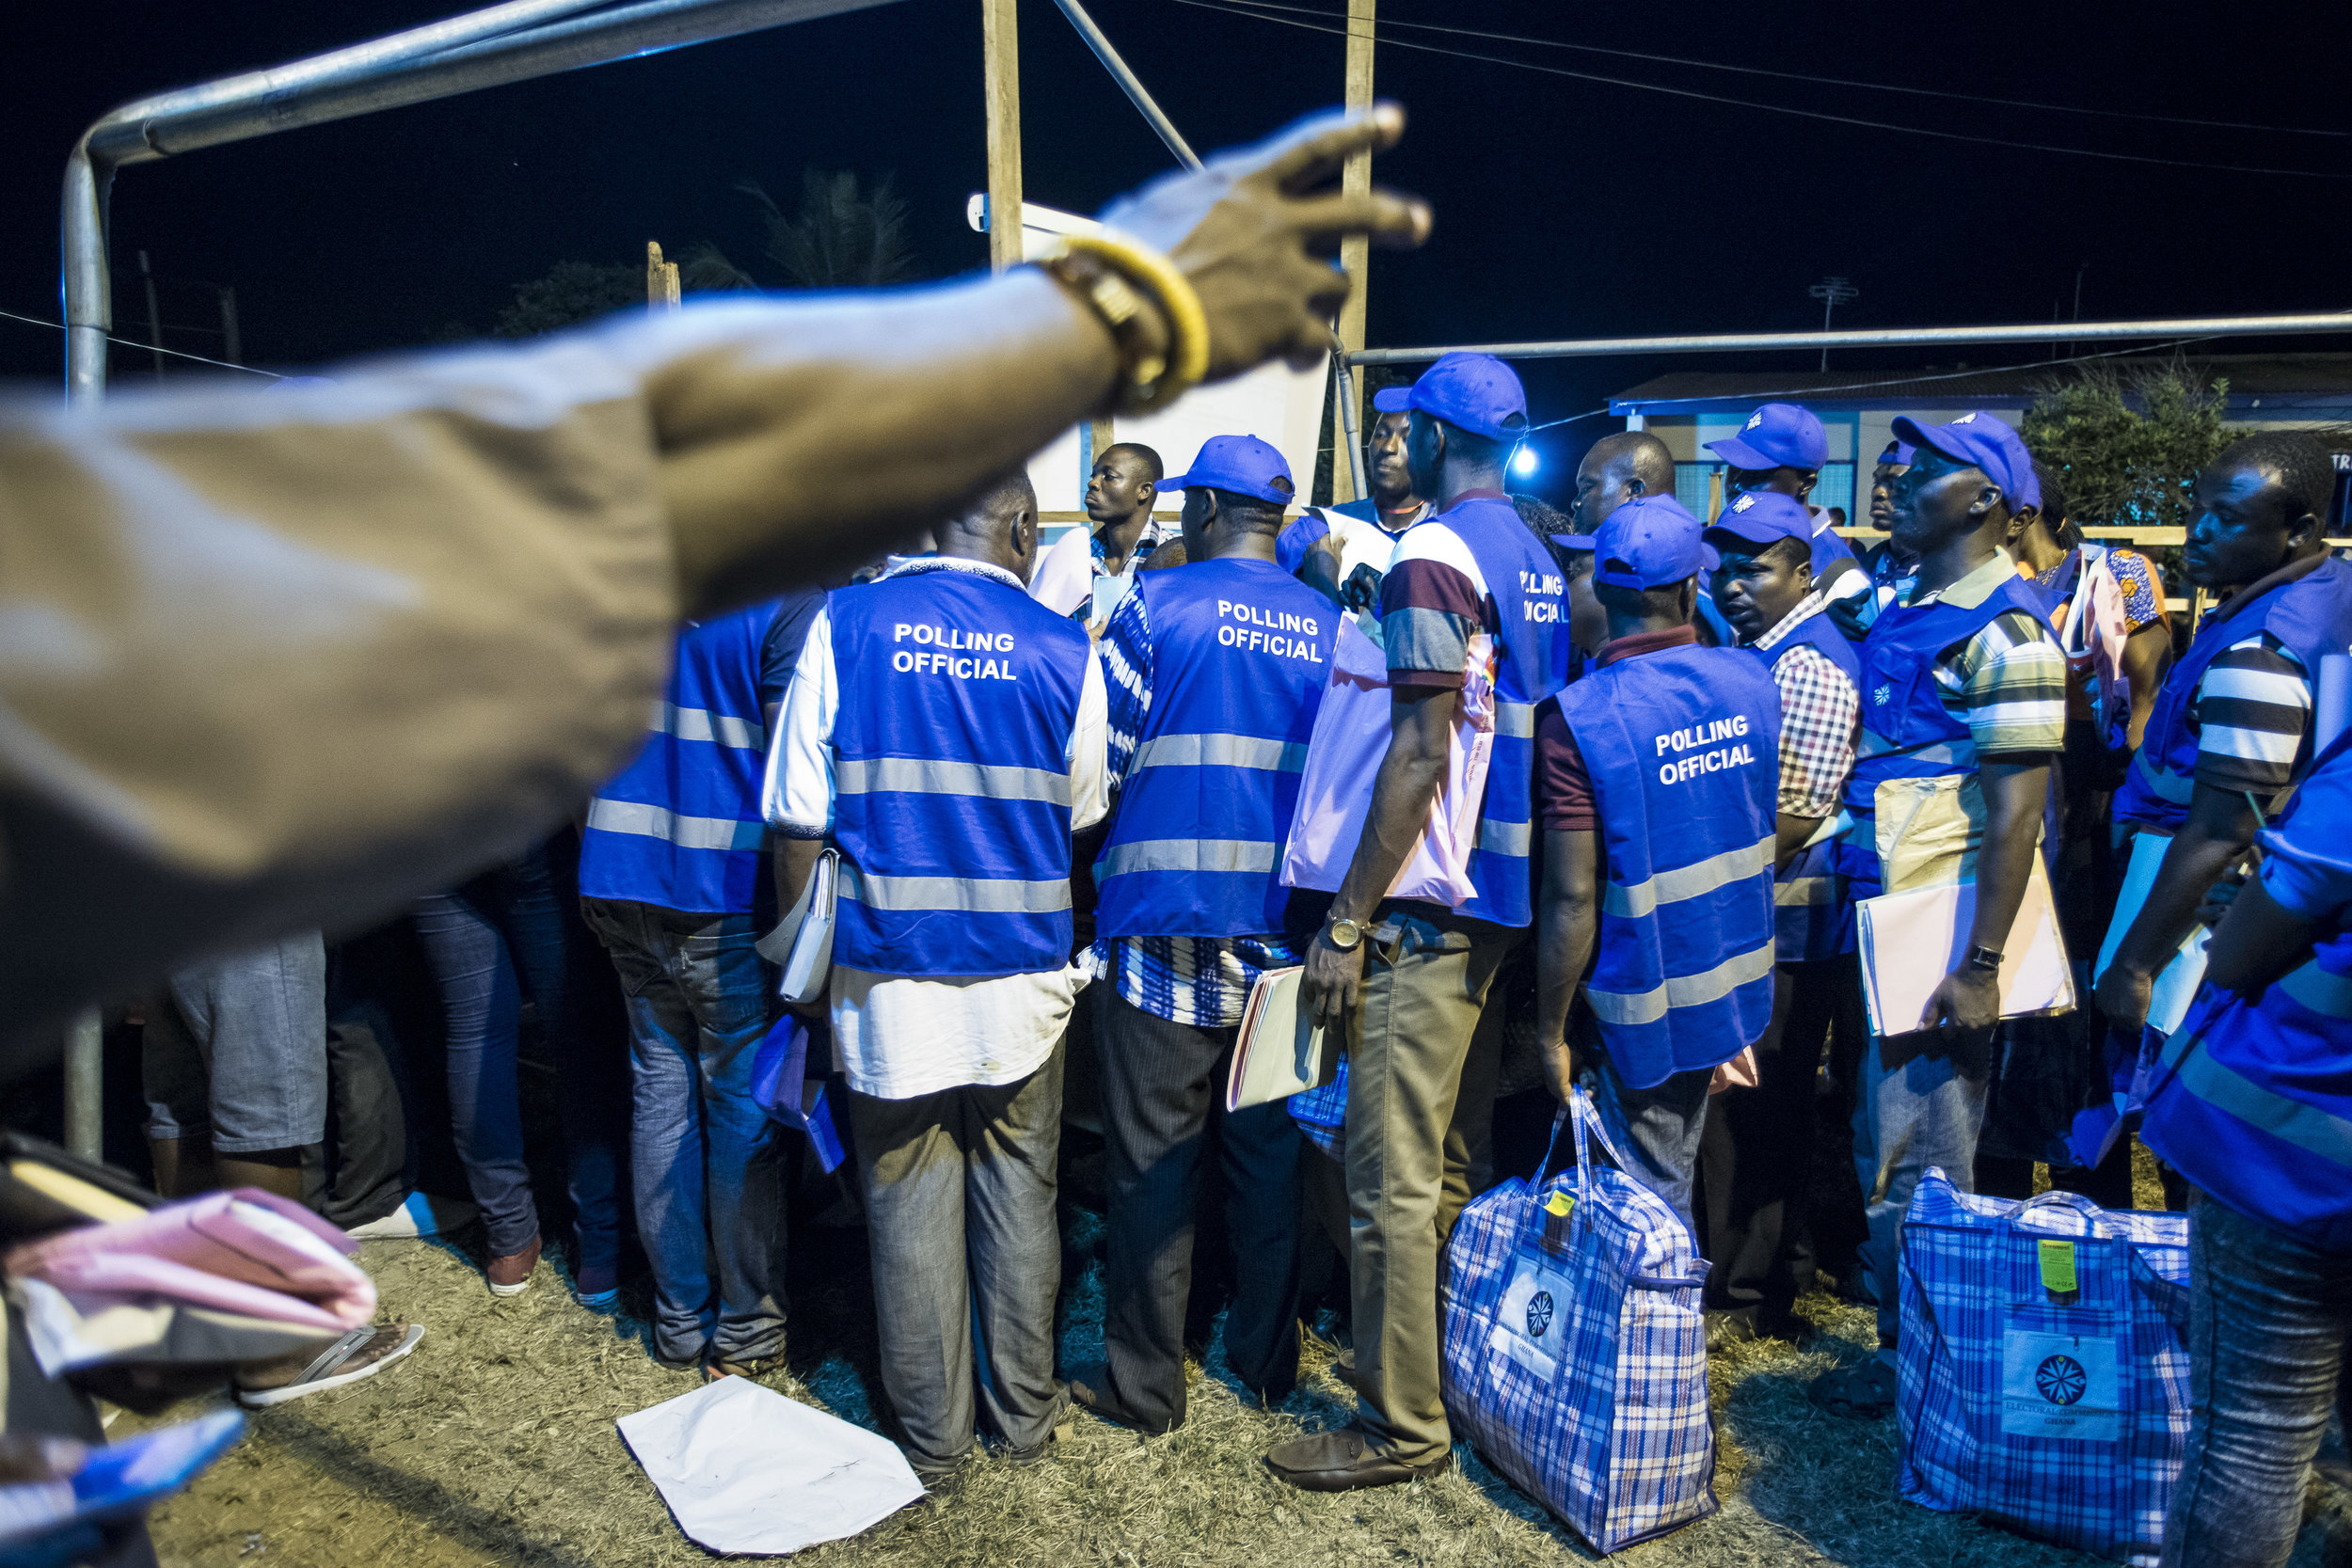 Election Commission volunteers gather in a Coalition Center in Teshie neighbourhood, Accra, to prepare for counting casted ballots during 7th December General Election Day